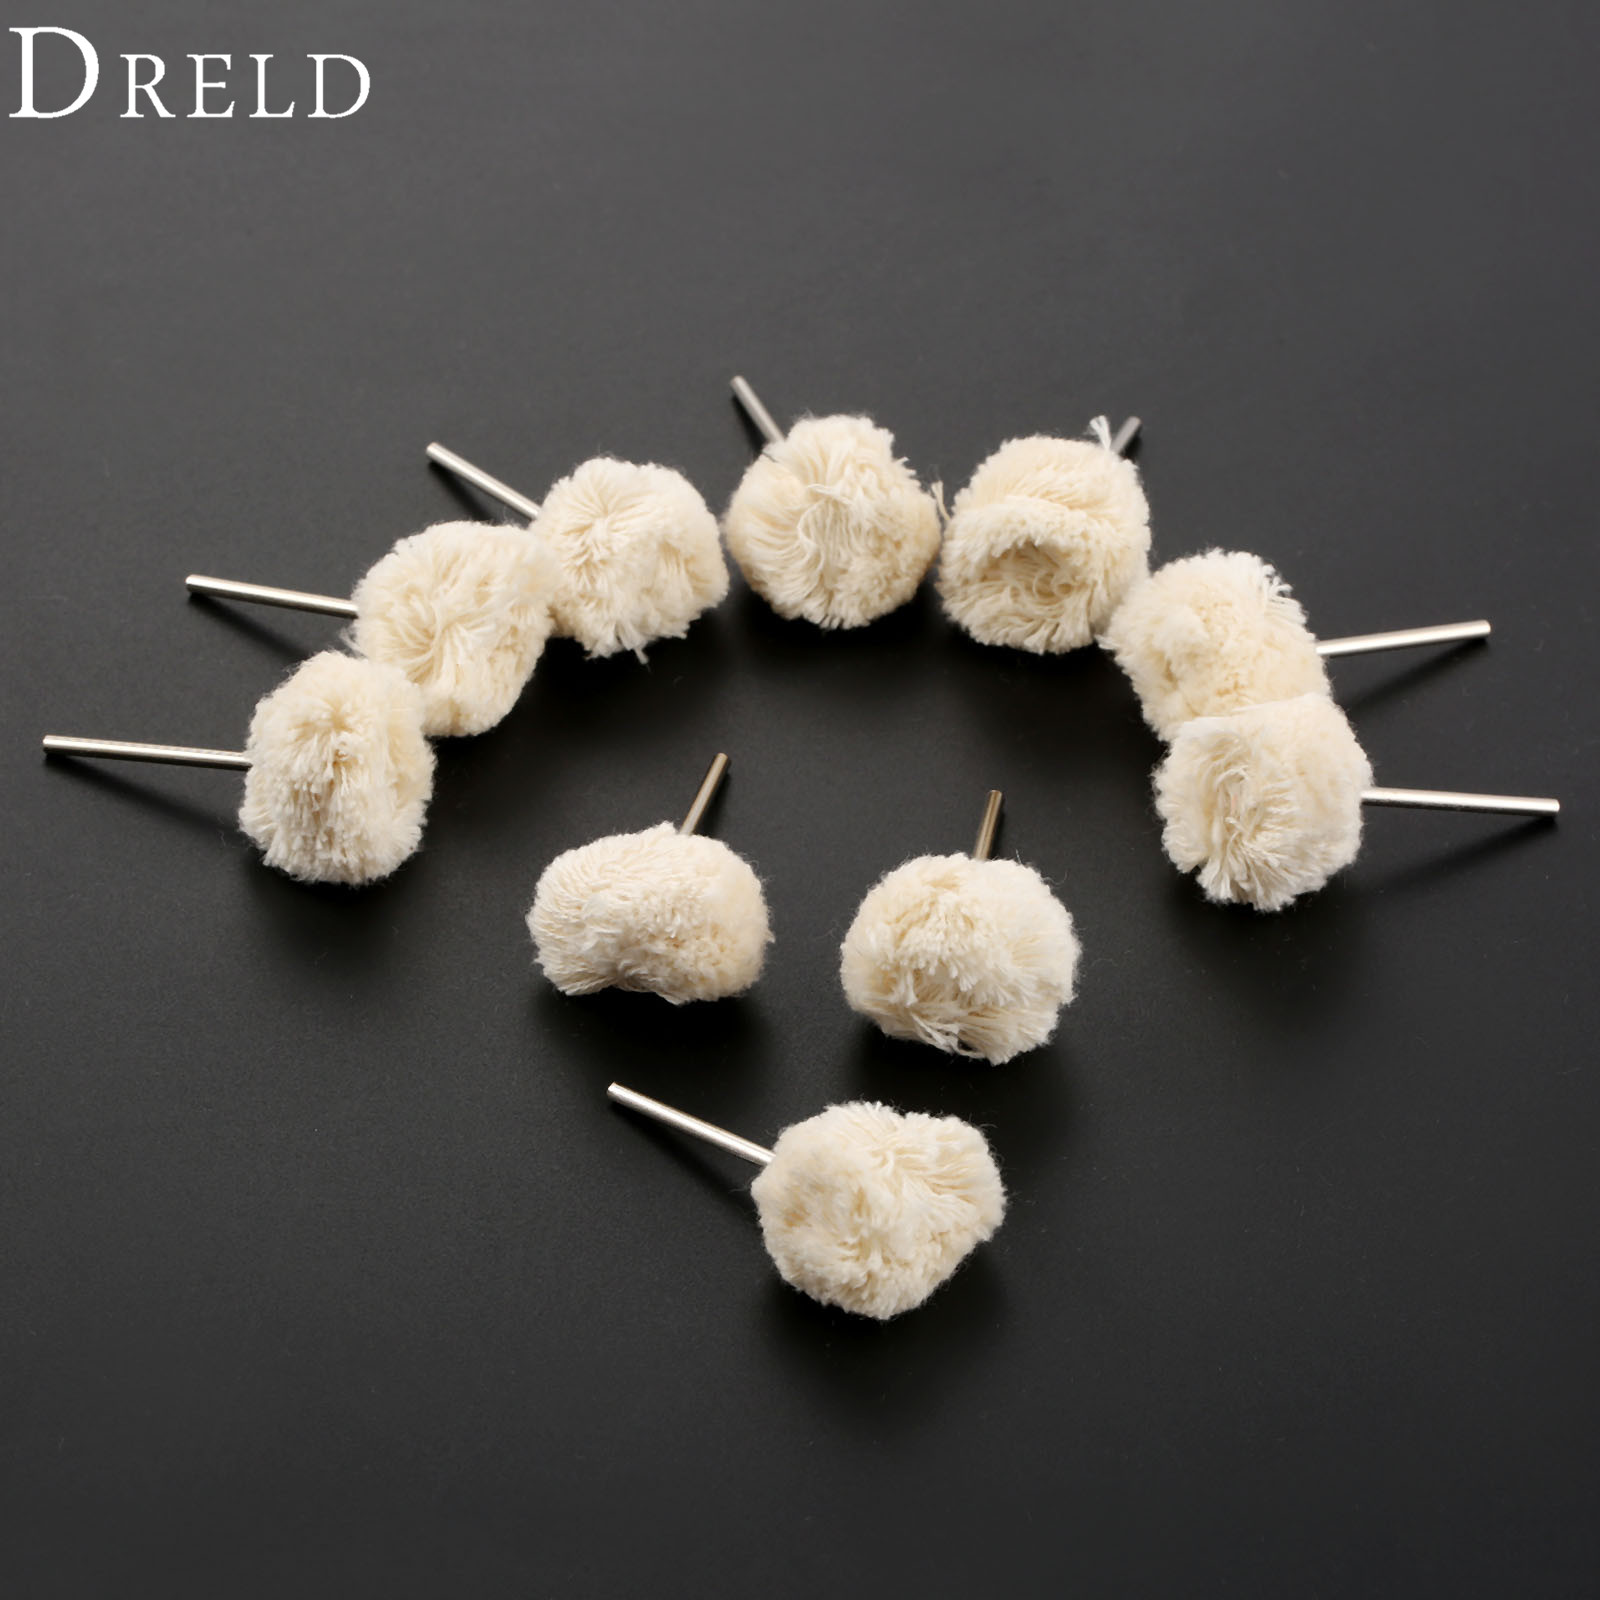 DRELD 10Pcs Dremel Accessories 22mm Wool Polishing Buffing Wheels 2.35mm Shank Jewelry Metals Grinding For Drill Rotary Tools